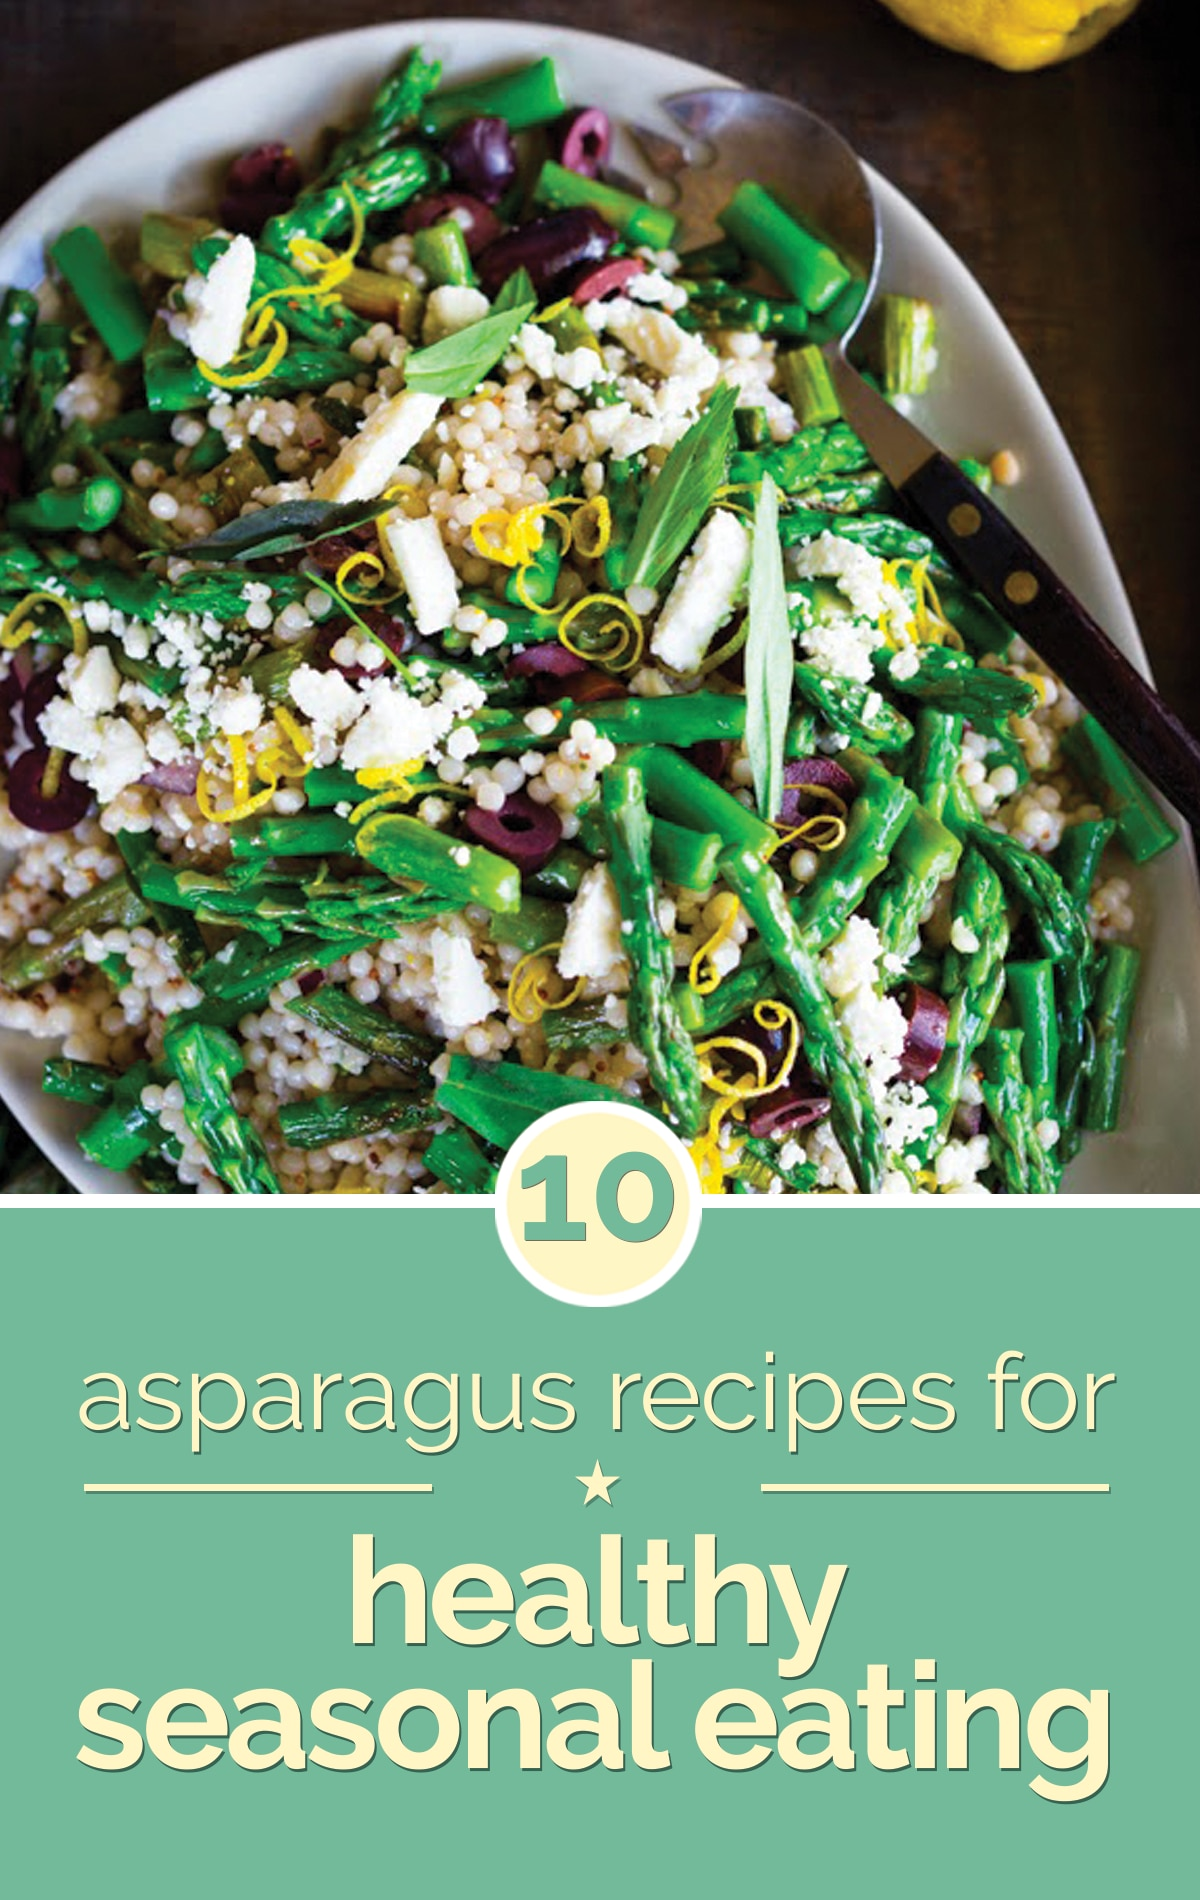 asparagus-recipes